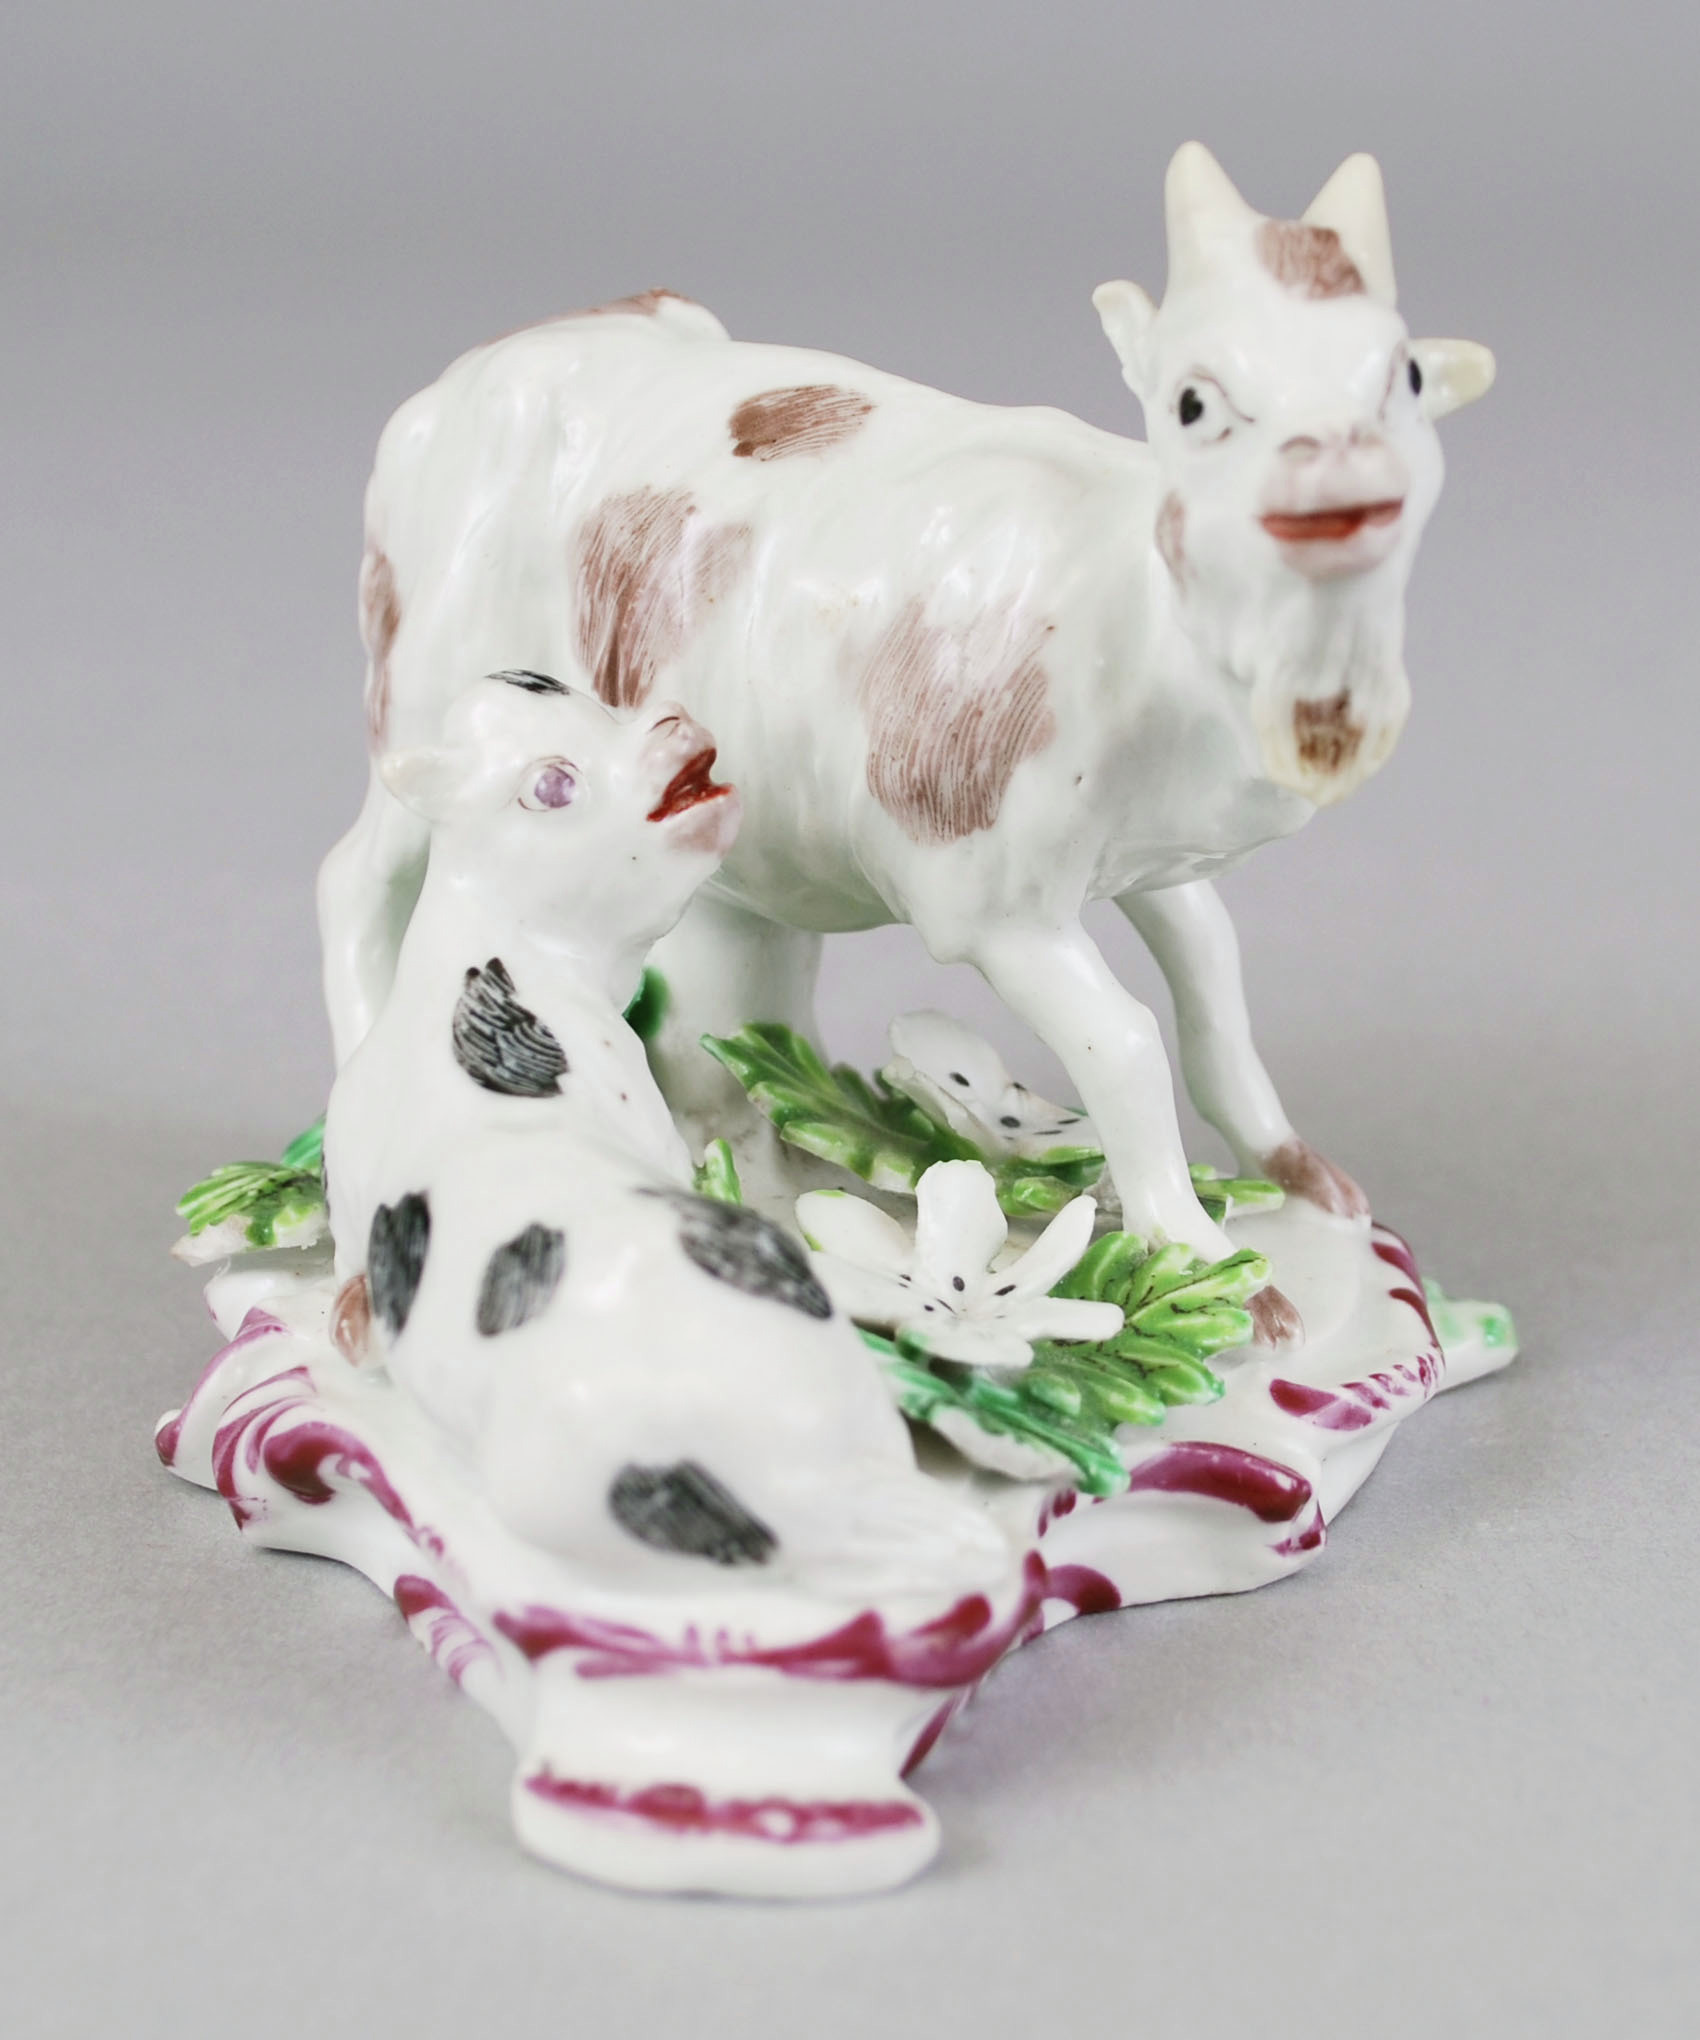 Bow porcelain goat and kid facing each other. The goat has brown patches and is standing while the kid painted with dark gray patches in sitting. The scroll base is painted in burgundy strokes and decorated with green foliage and white flowers.